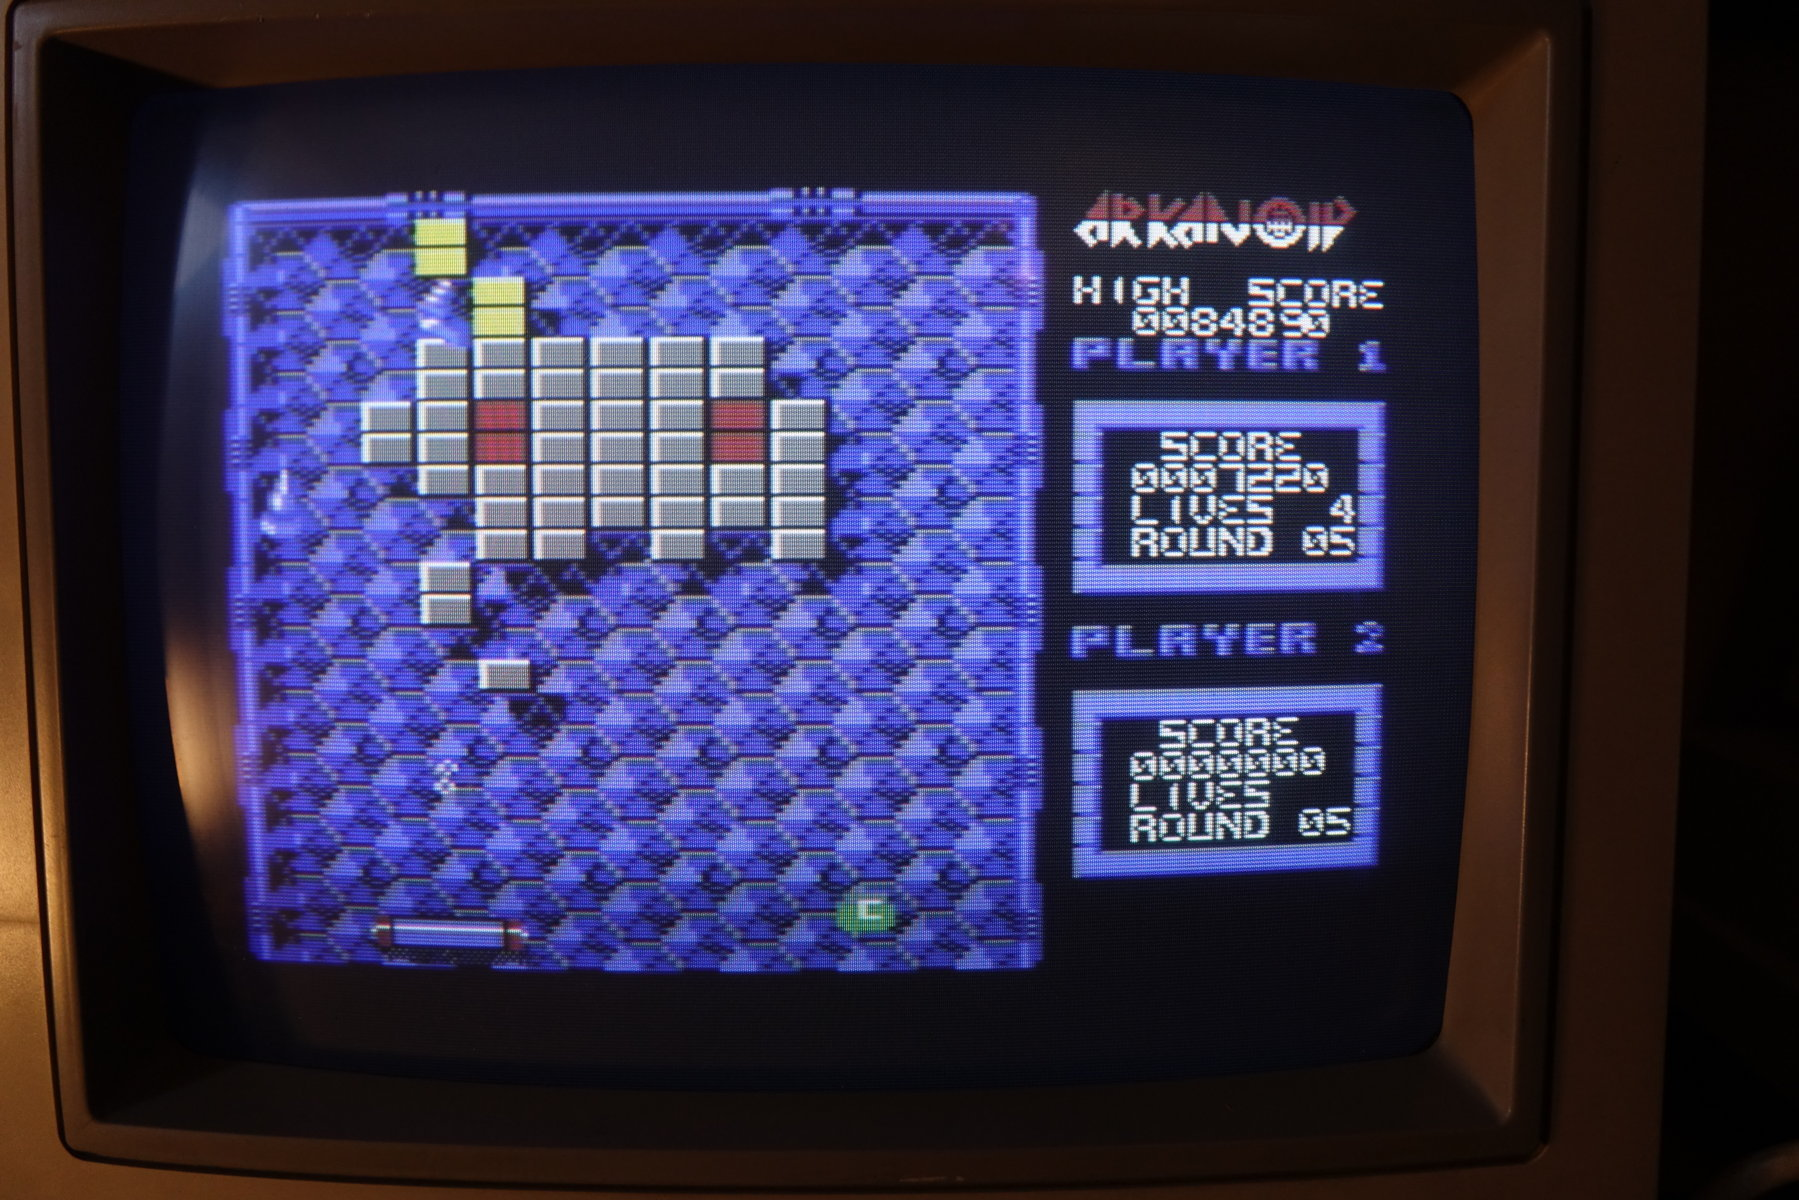 plus4punk: Arkanoid (Commodore 64) 84,890 points on 2020-04-29 14:11:47